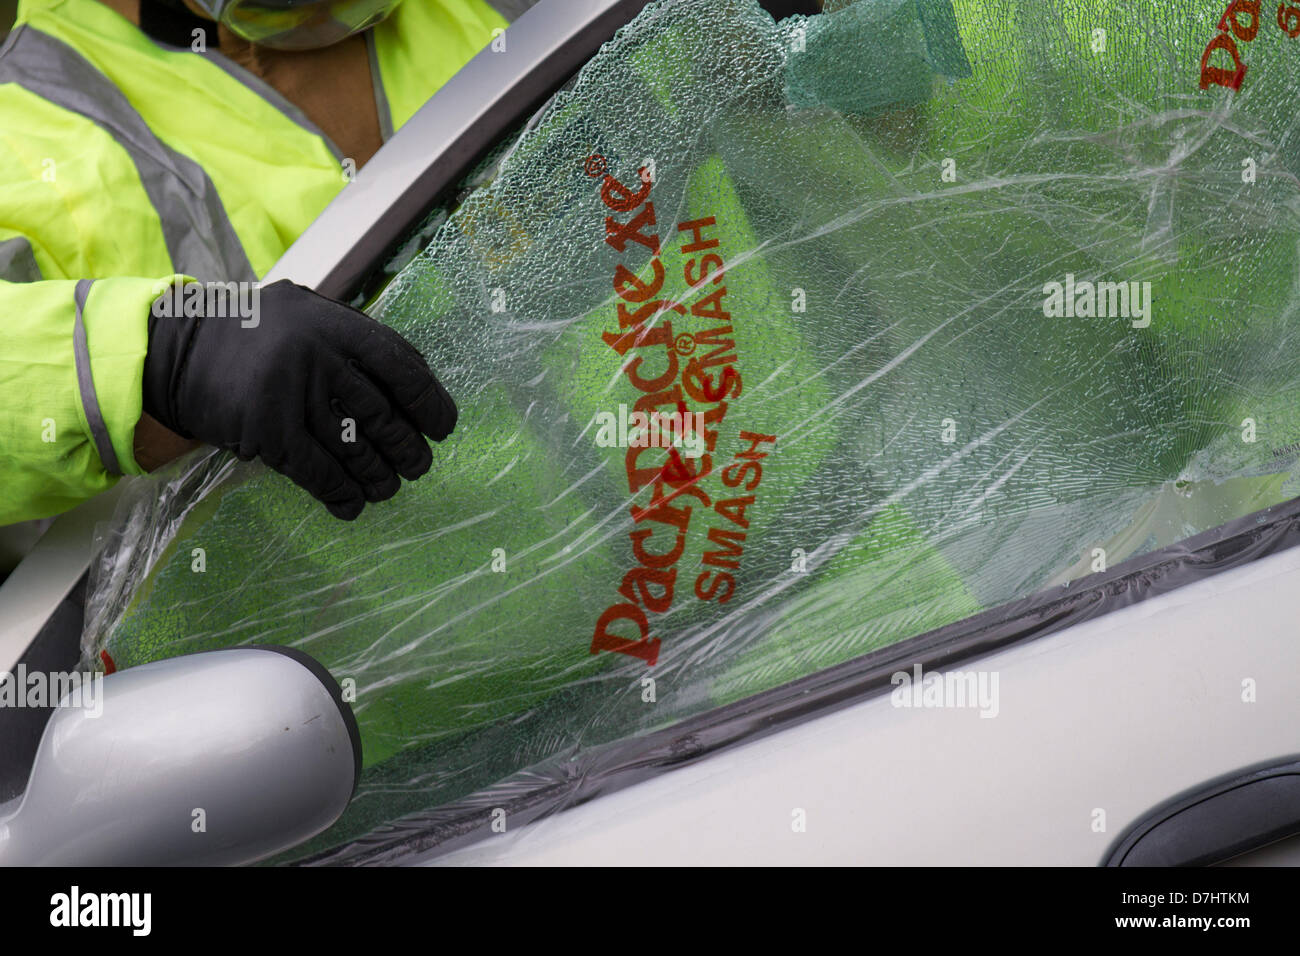 Formby, Merseyside, UK  8th May, 2013. Packexe Smash Film on broken window, used in a Rescue Demonstration during - Stock Image